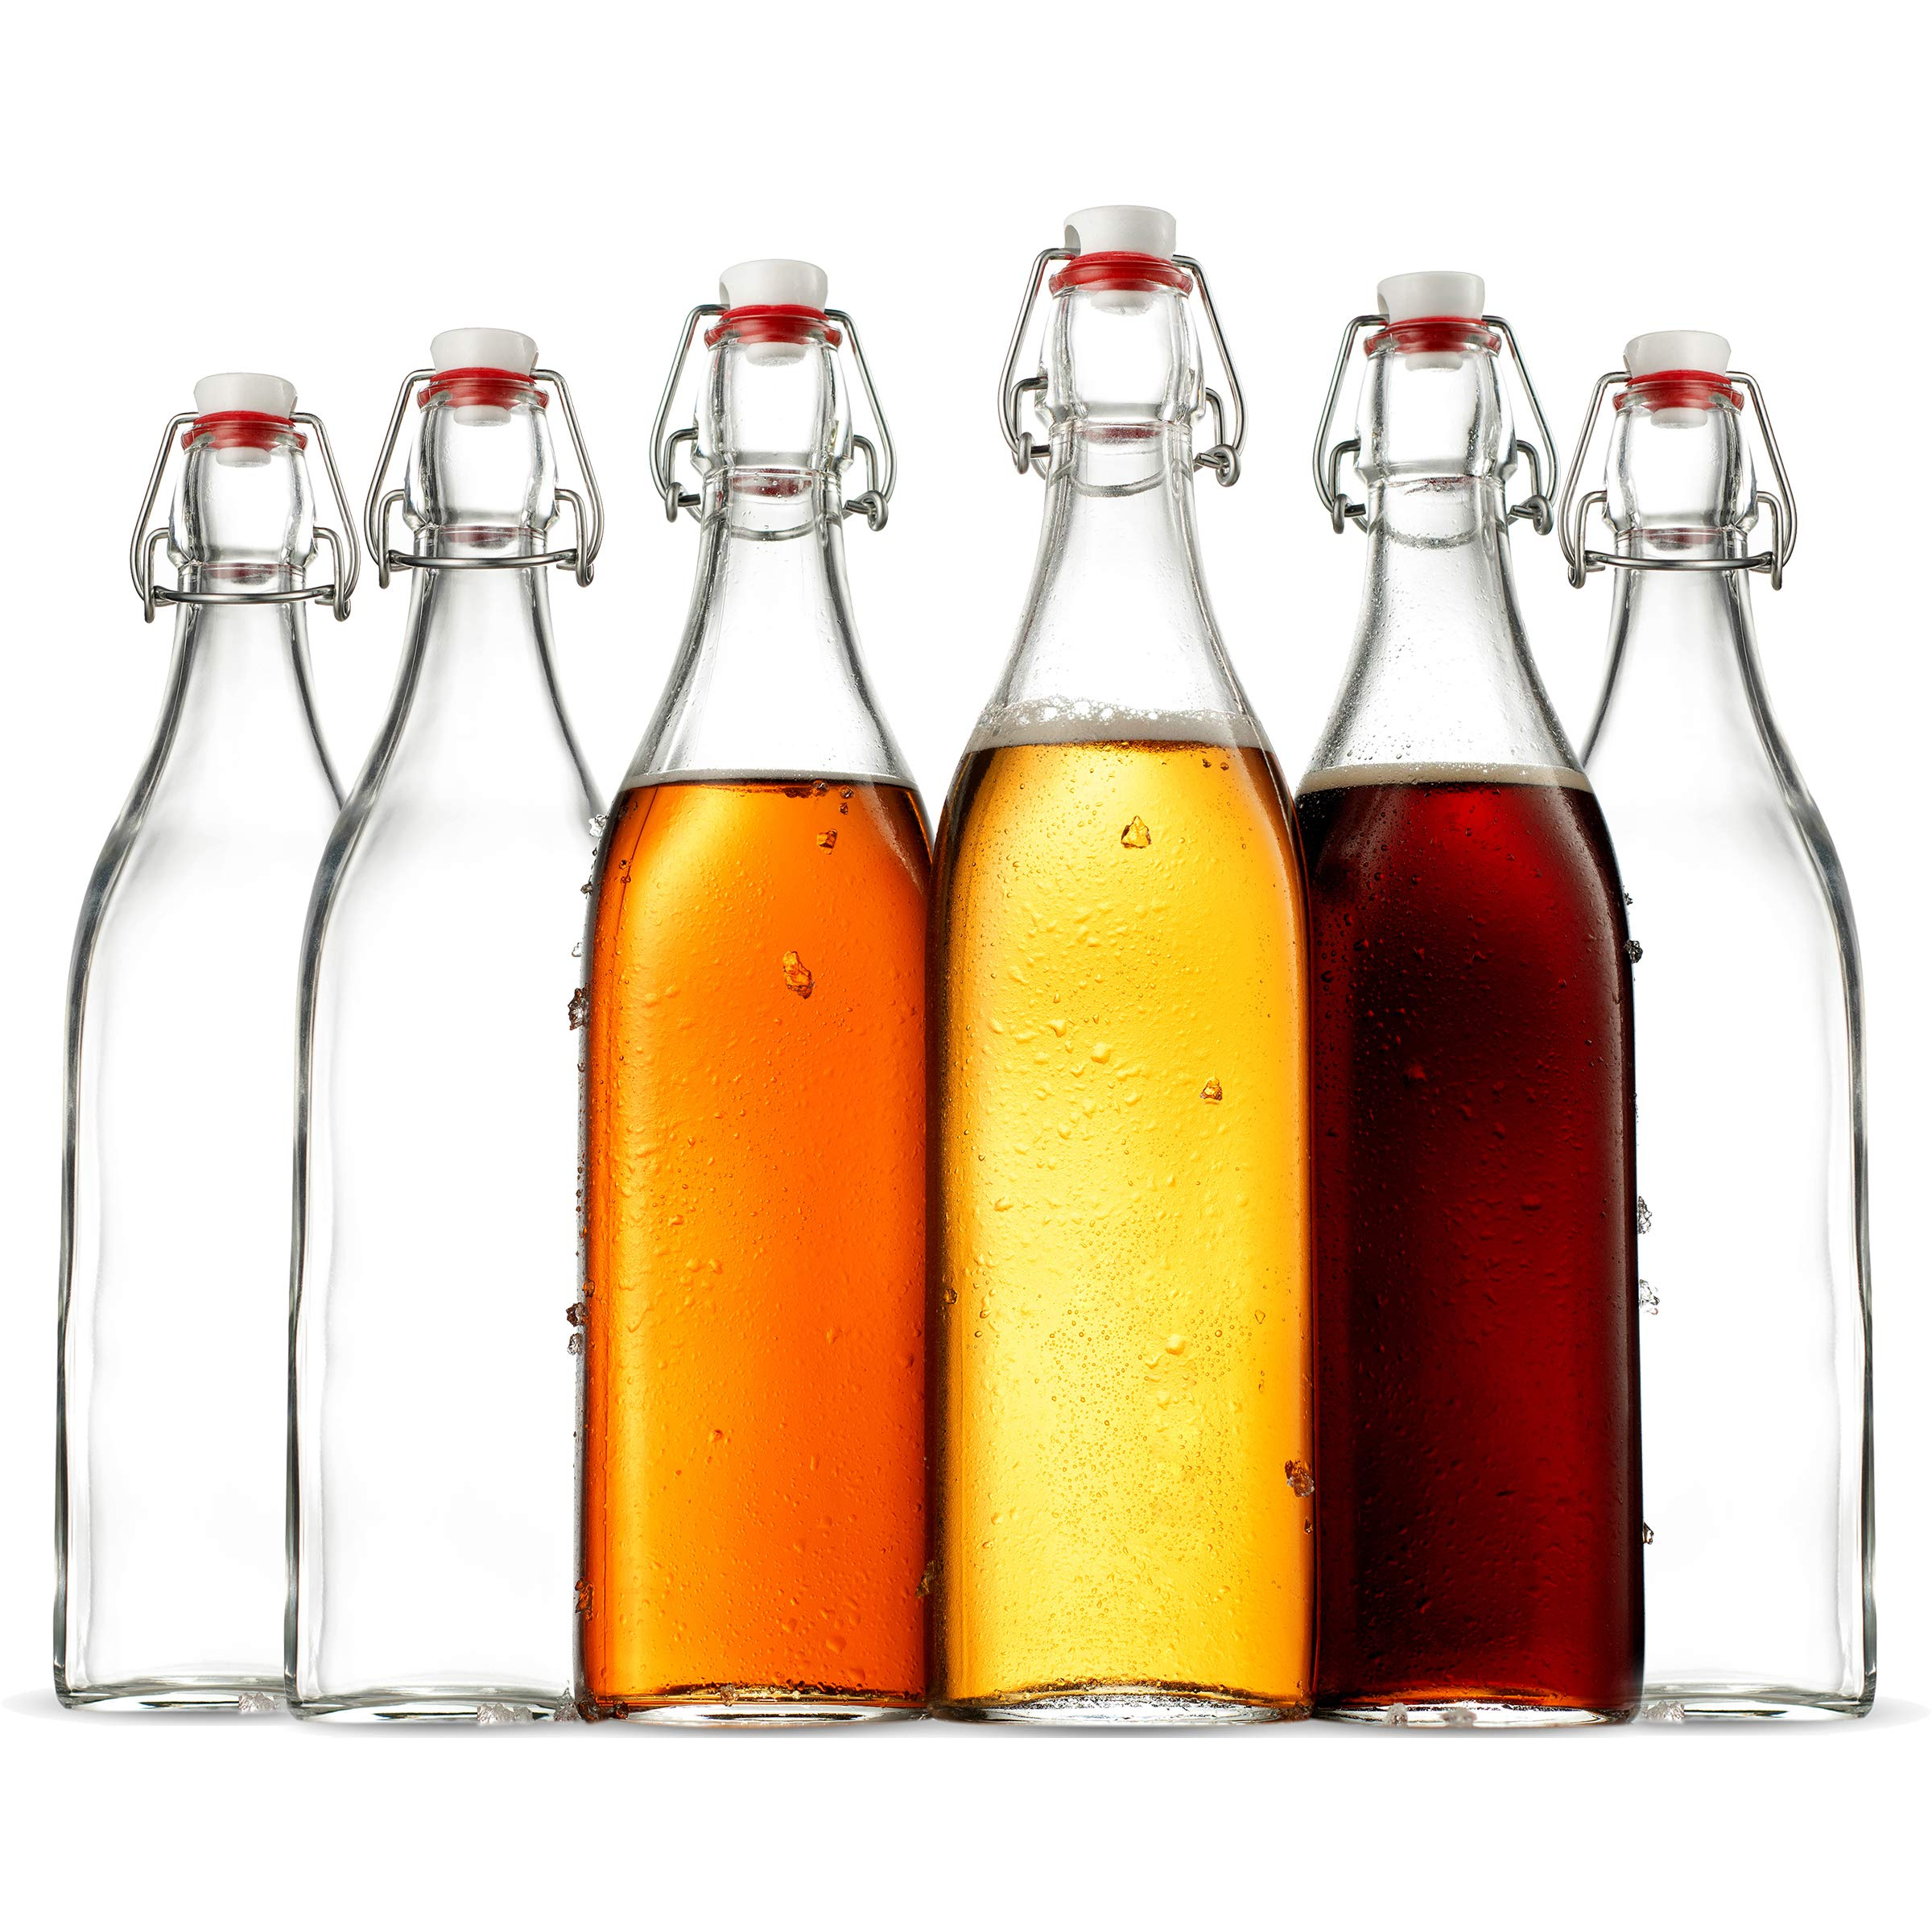 Swing Top Clear Glass SQUARE Bottle With Airtight Stopper - 33.75 oz (6 Pack) Fliptop Grolsch Bottles Great for Oil and Vinegar, Beverages, Kombucha, Homemade Juices, Smoothies, Homebrewing, Beer.